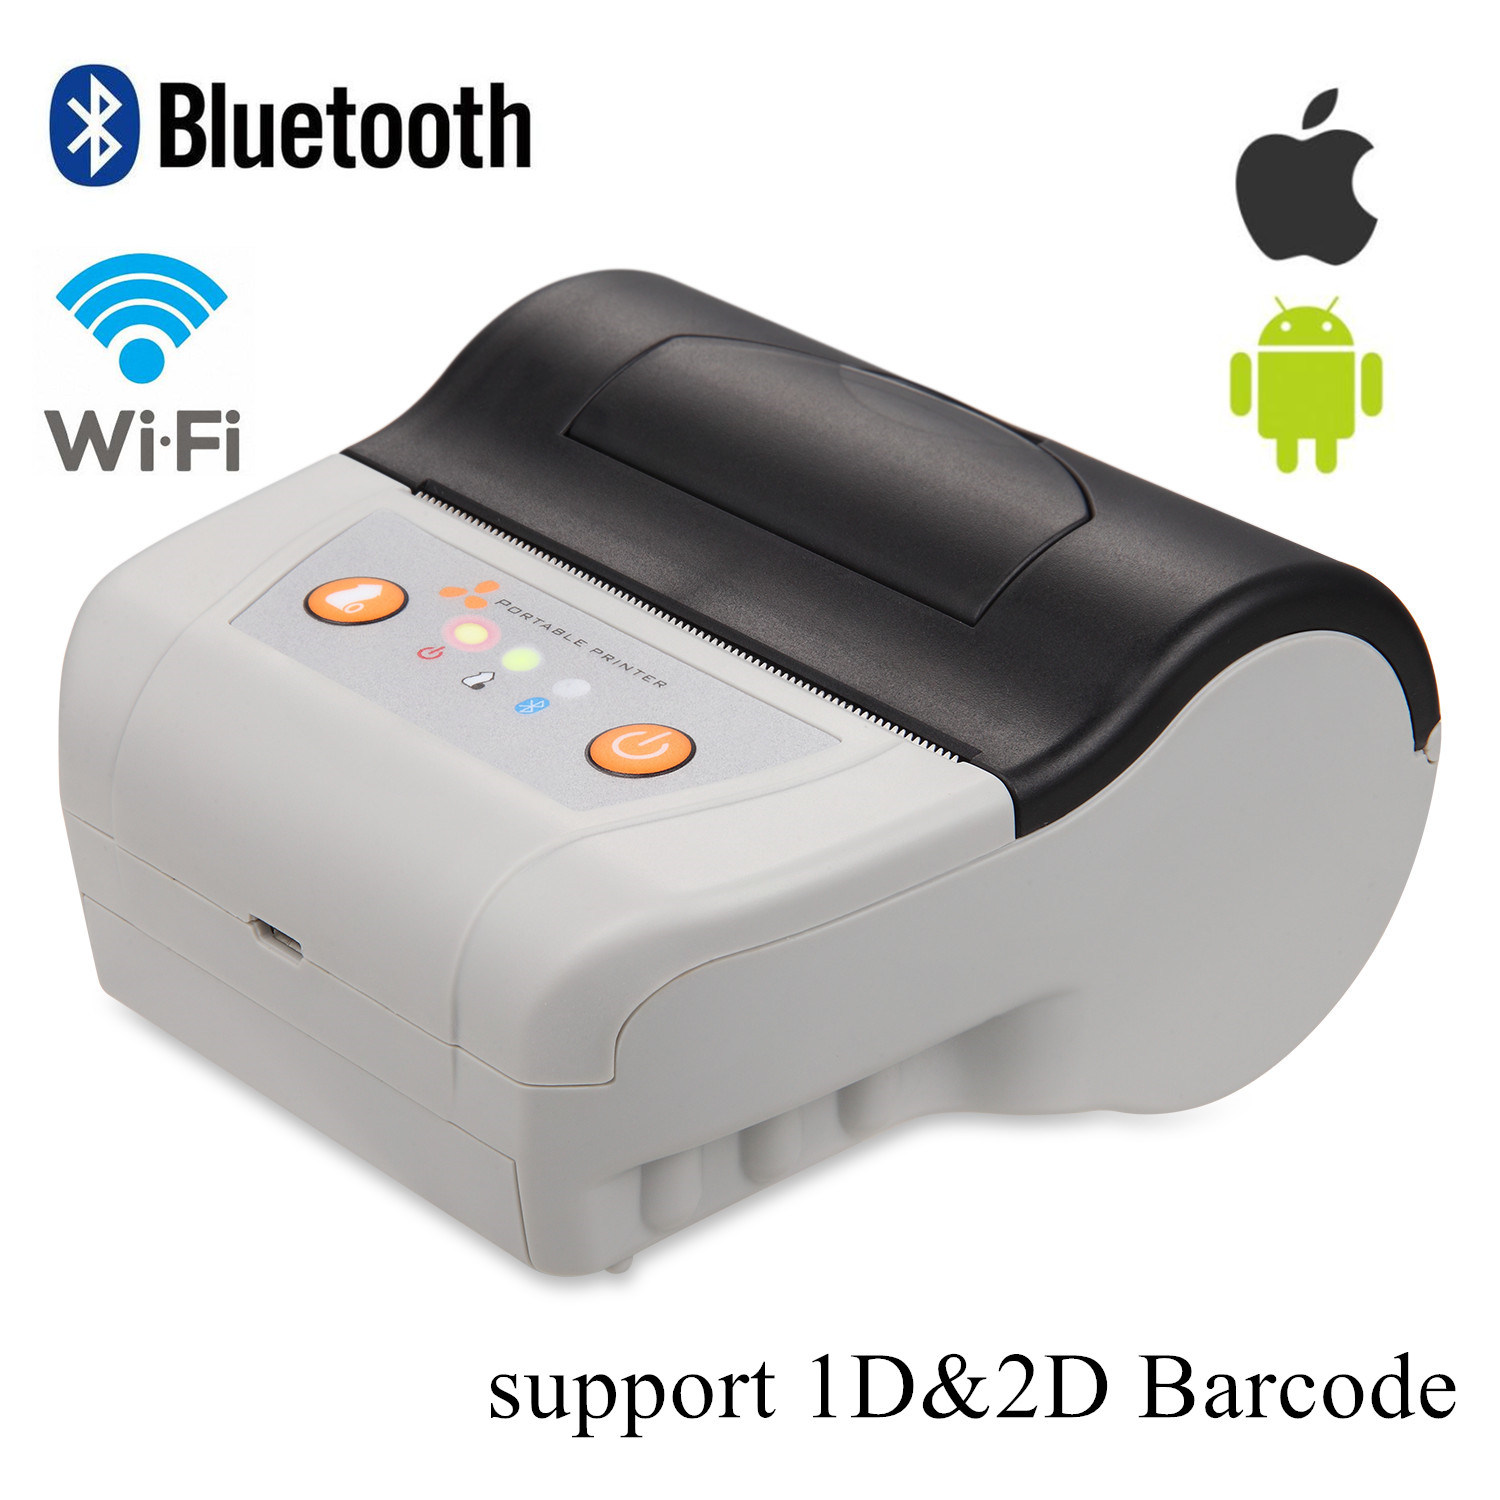 China 3 Inch Bluetooth Printers Android Handheld Mobile Thermal Printer Ts M330a China Printer Handheld Scanner Printer